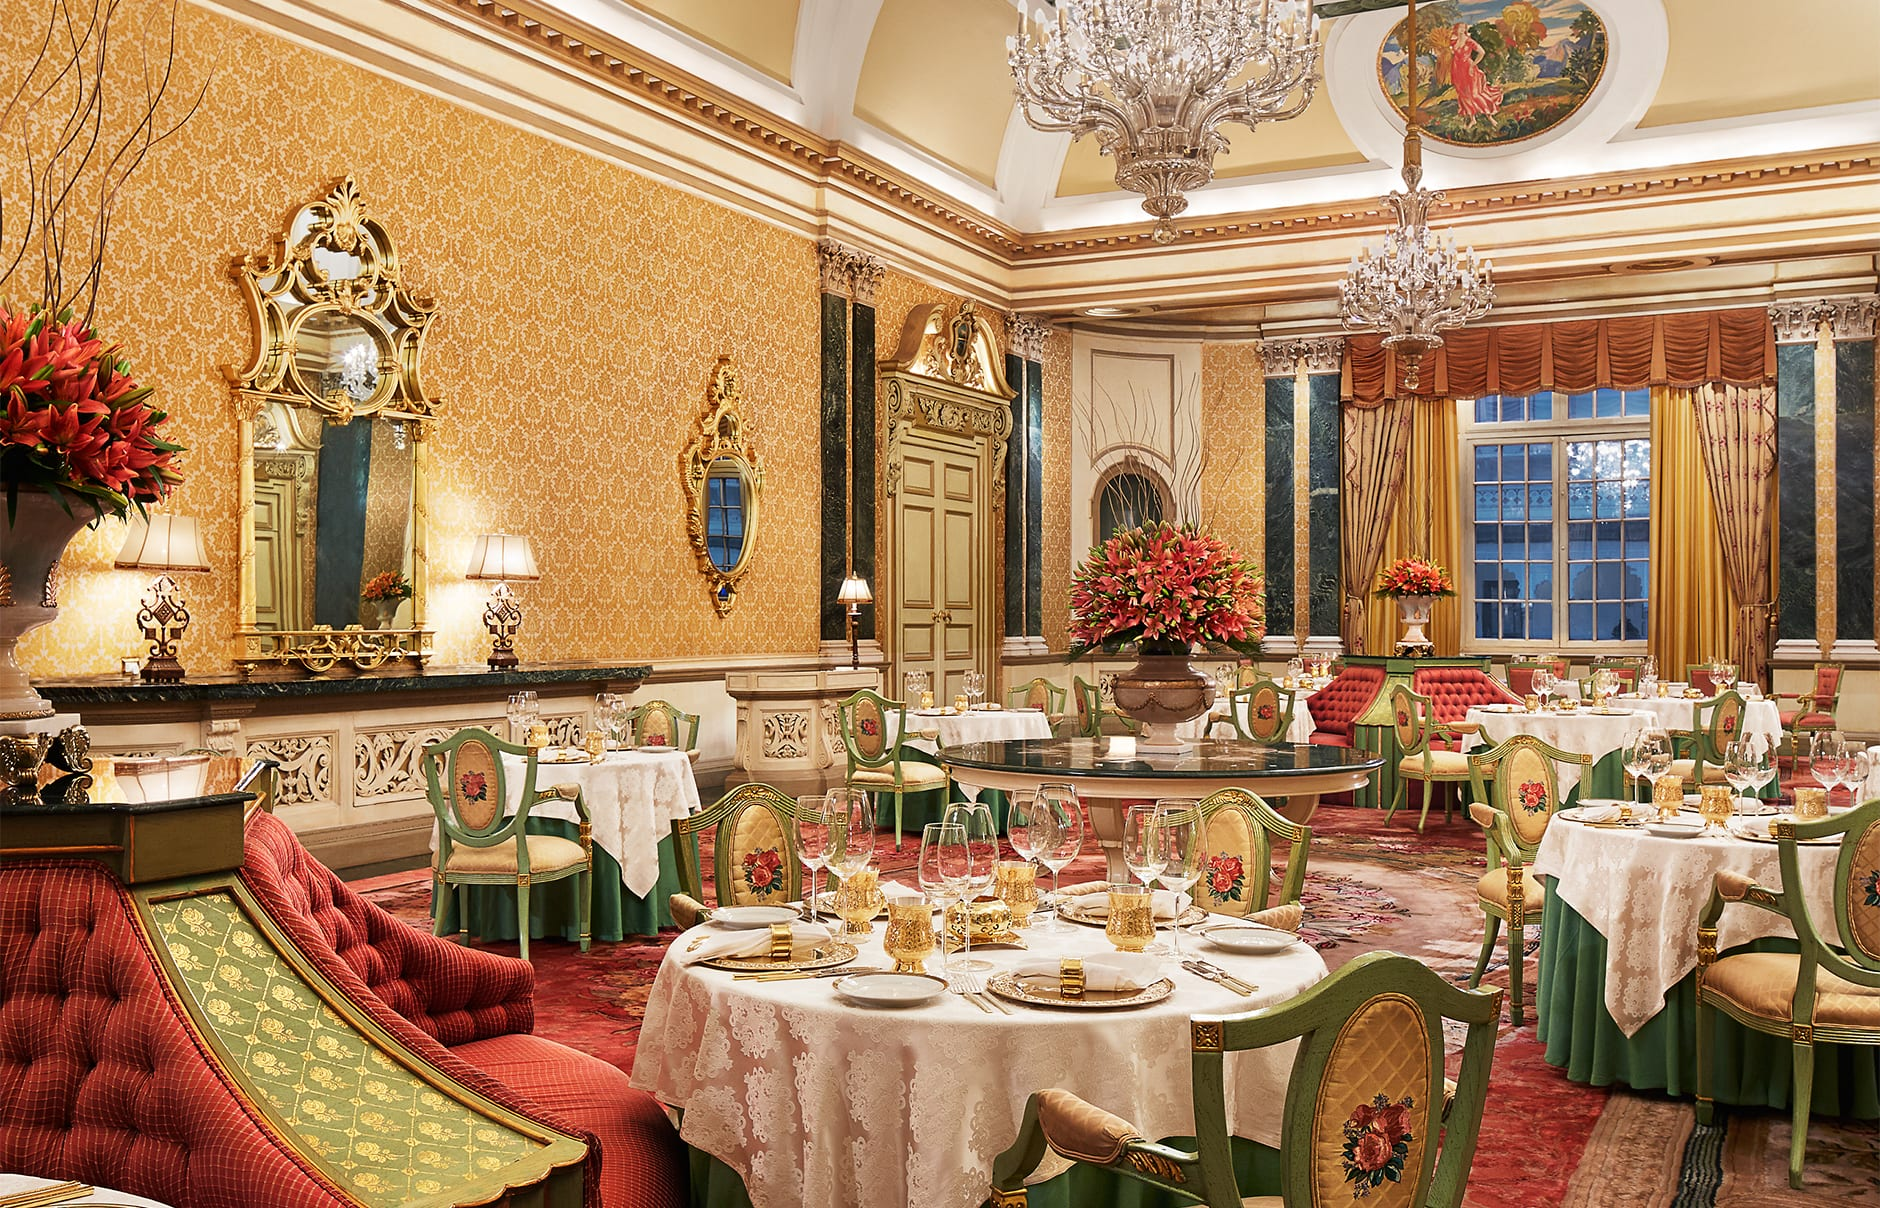 Dining Room Furniture Deals Rambagh Palace Jaipur 171 Luxury Hotels Travelplusstyle